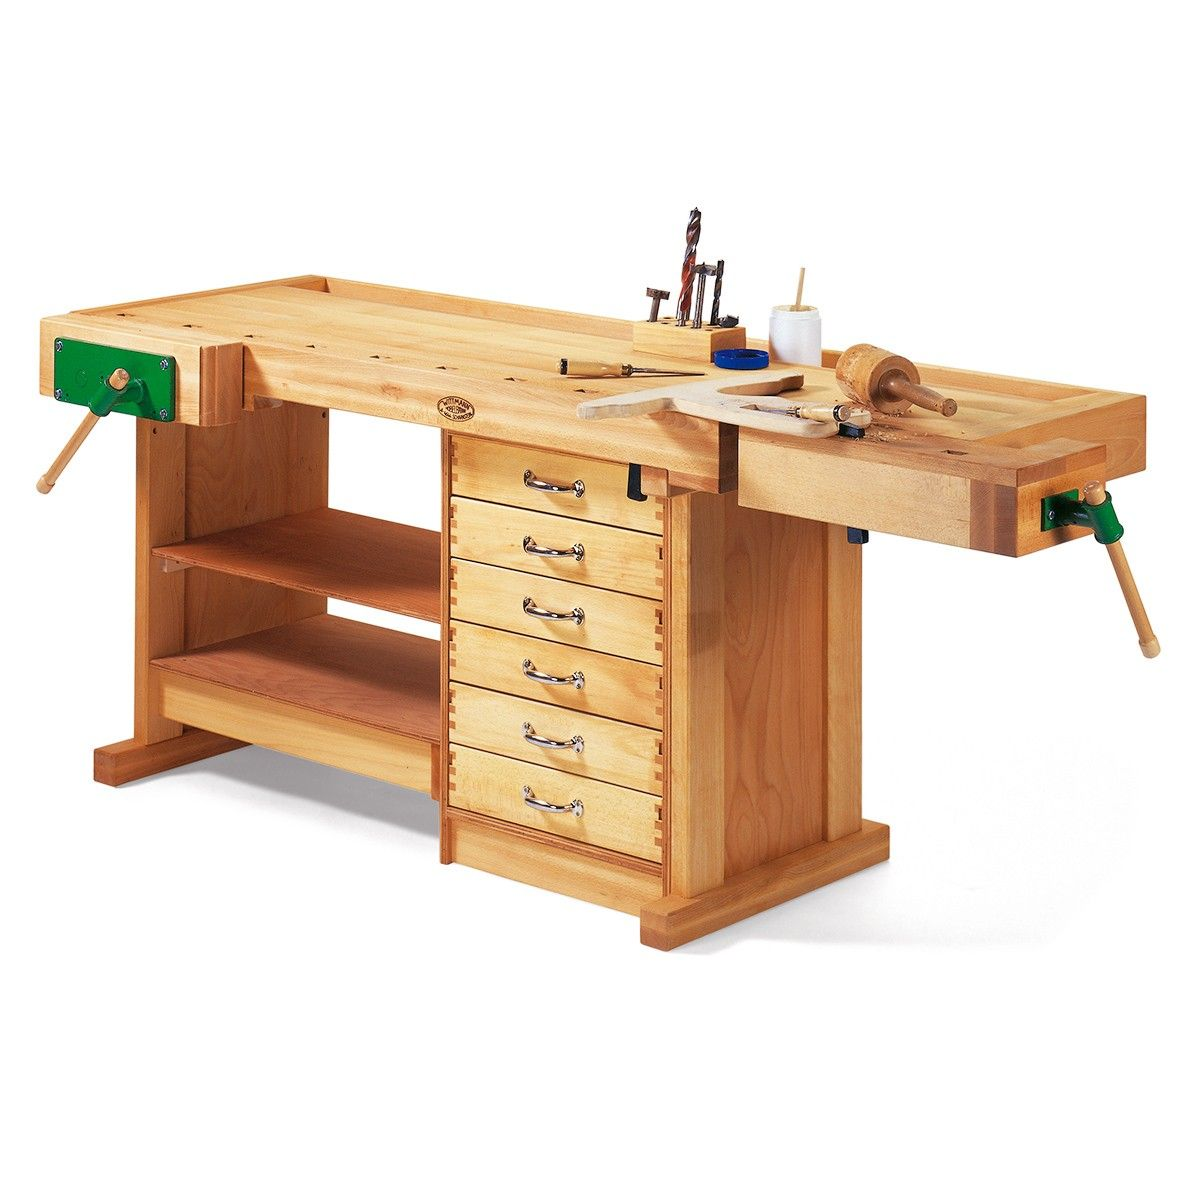 Wooden Workbench With Drawers Plans: Wittmann Workbench Professional Edition With Solid Wood